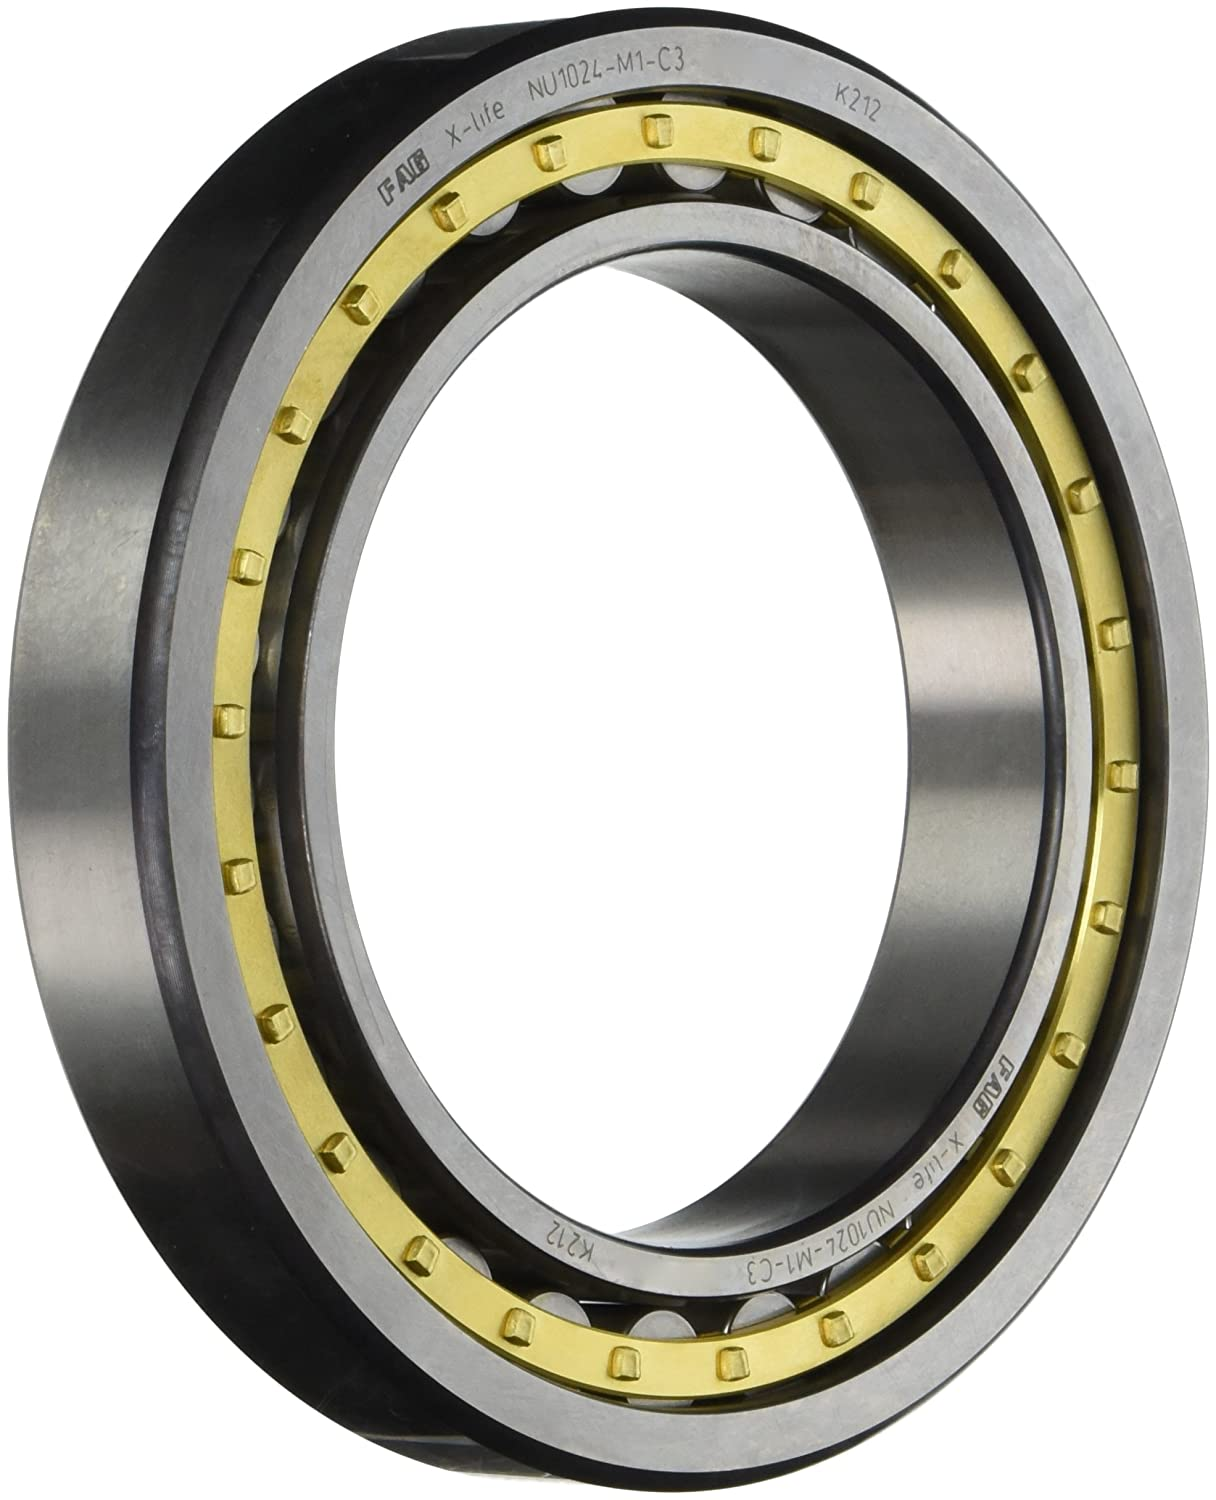 FAG NU1024M1-C3 Cylindrical Roller Bearing, Single Row, Straight Bore,  Removable Inner Ring, Standard Capacity, Brass Cage, C3 Clearance, 120mm  ID, ...